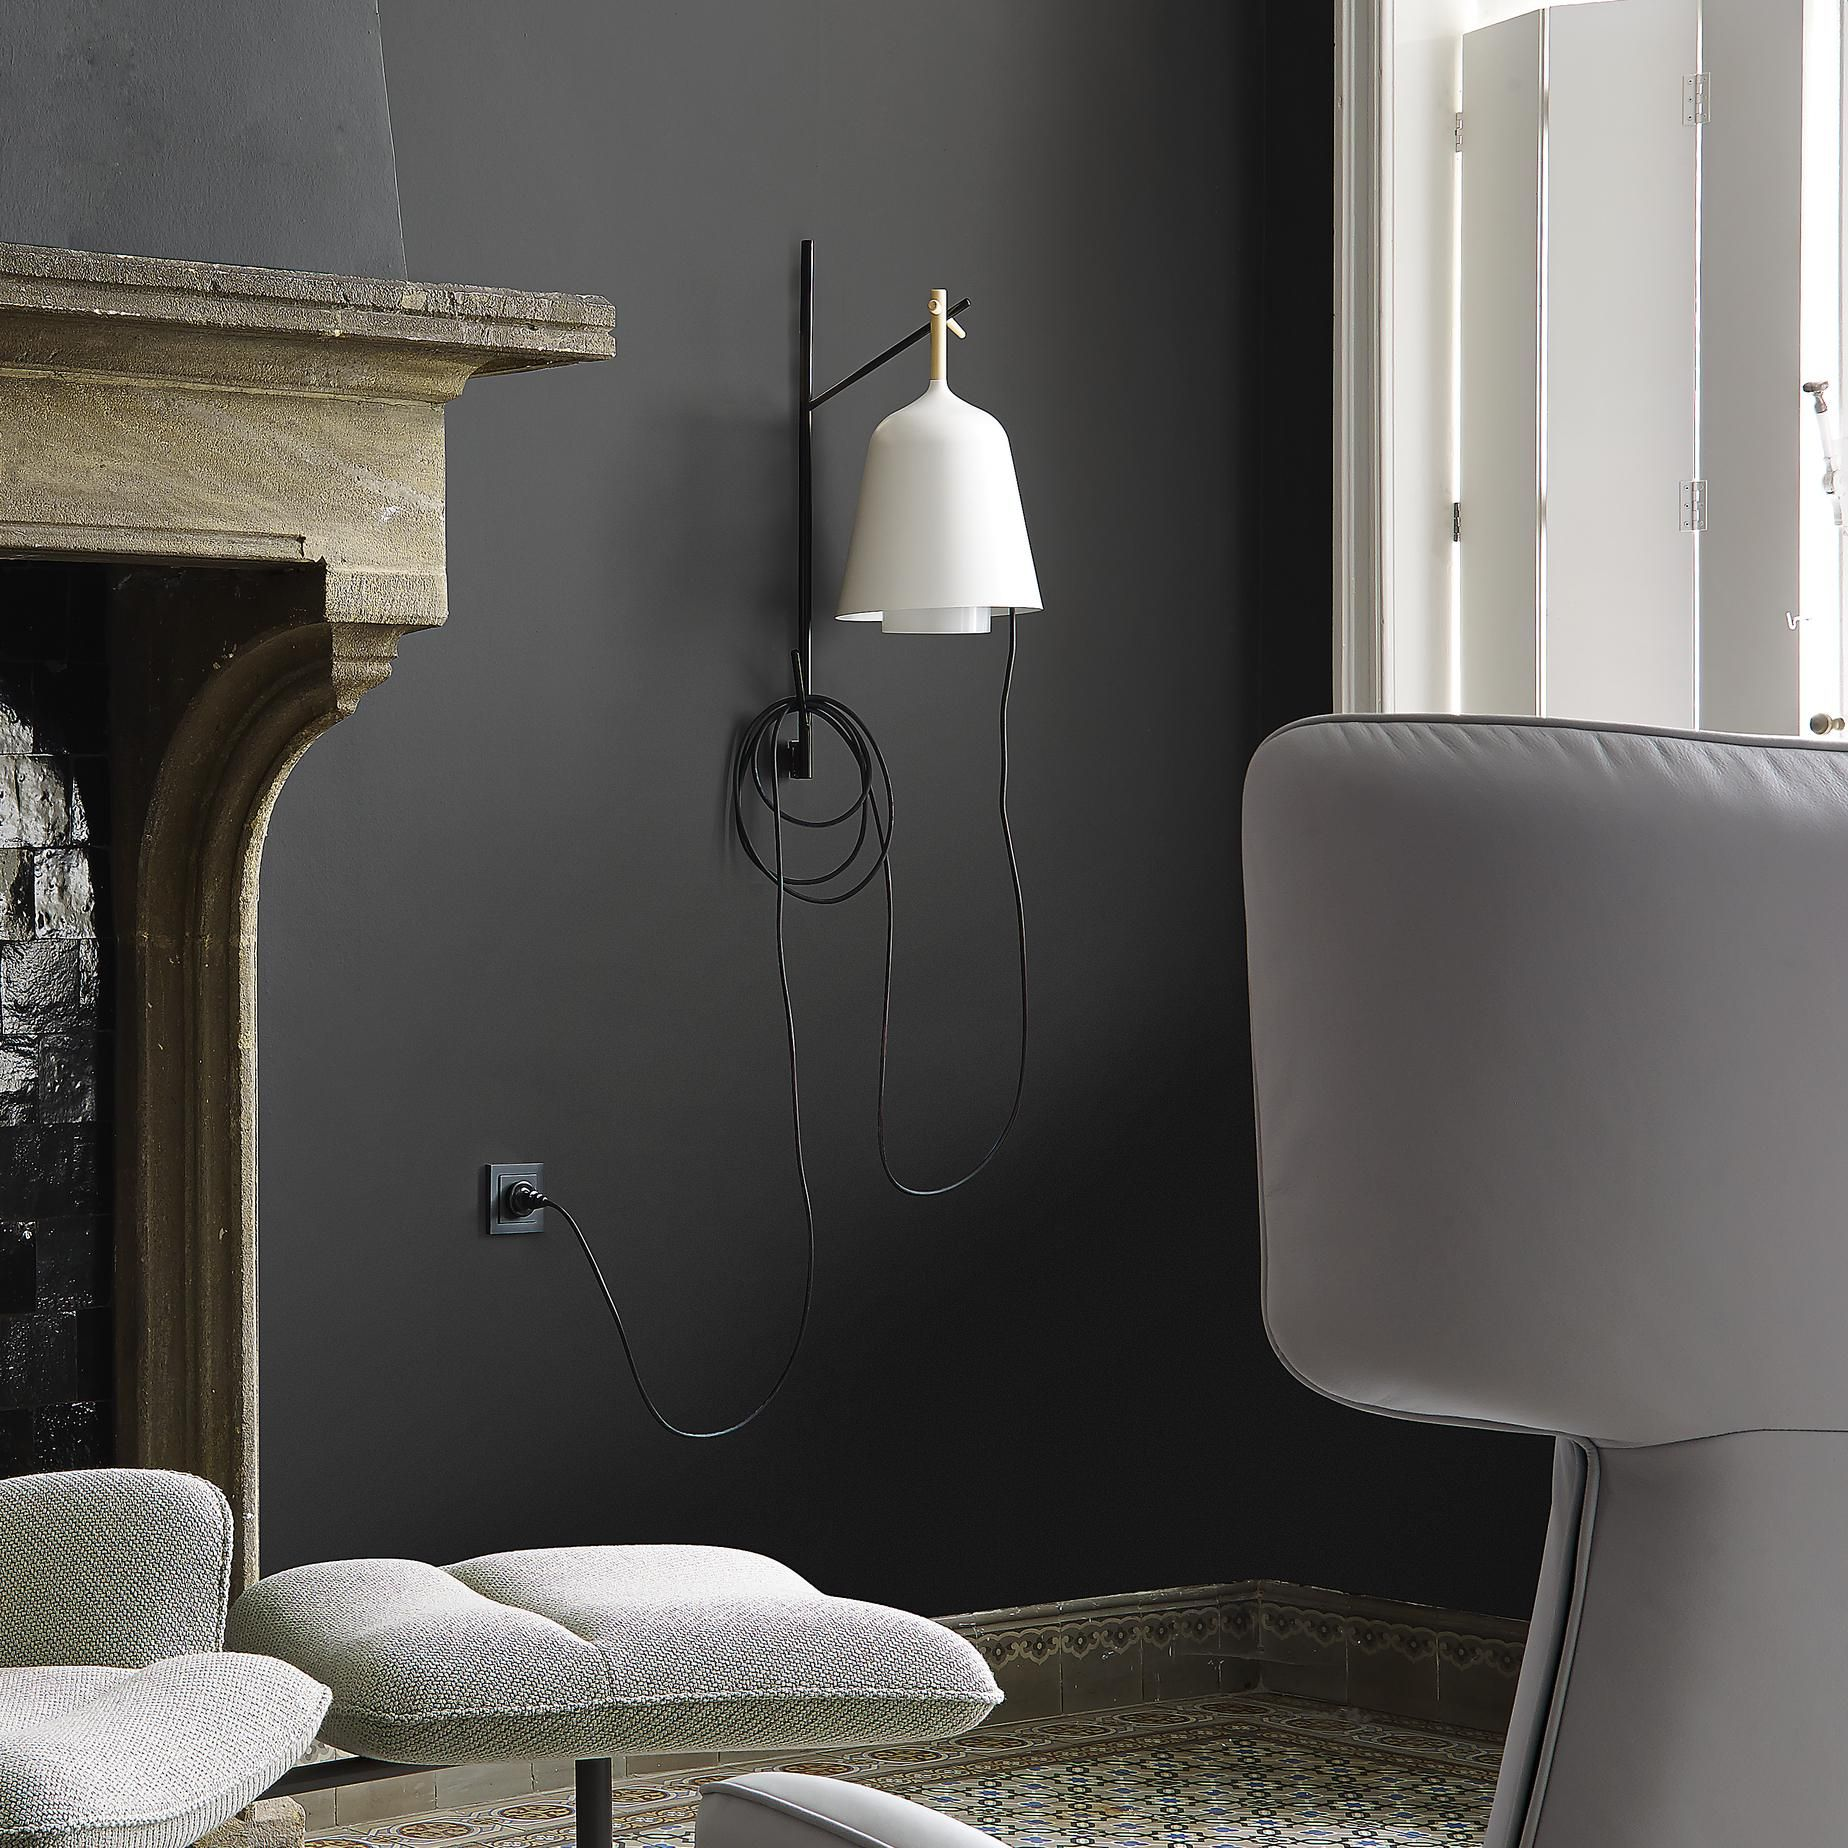 sous mon arbre appliques designer florian brillet. Black Bedroom Furniture Sets. Home Design Ideas